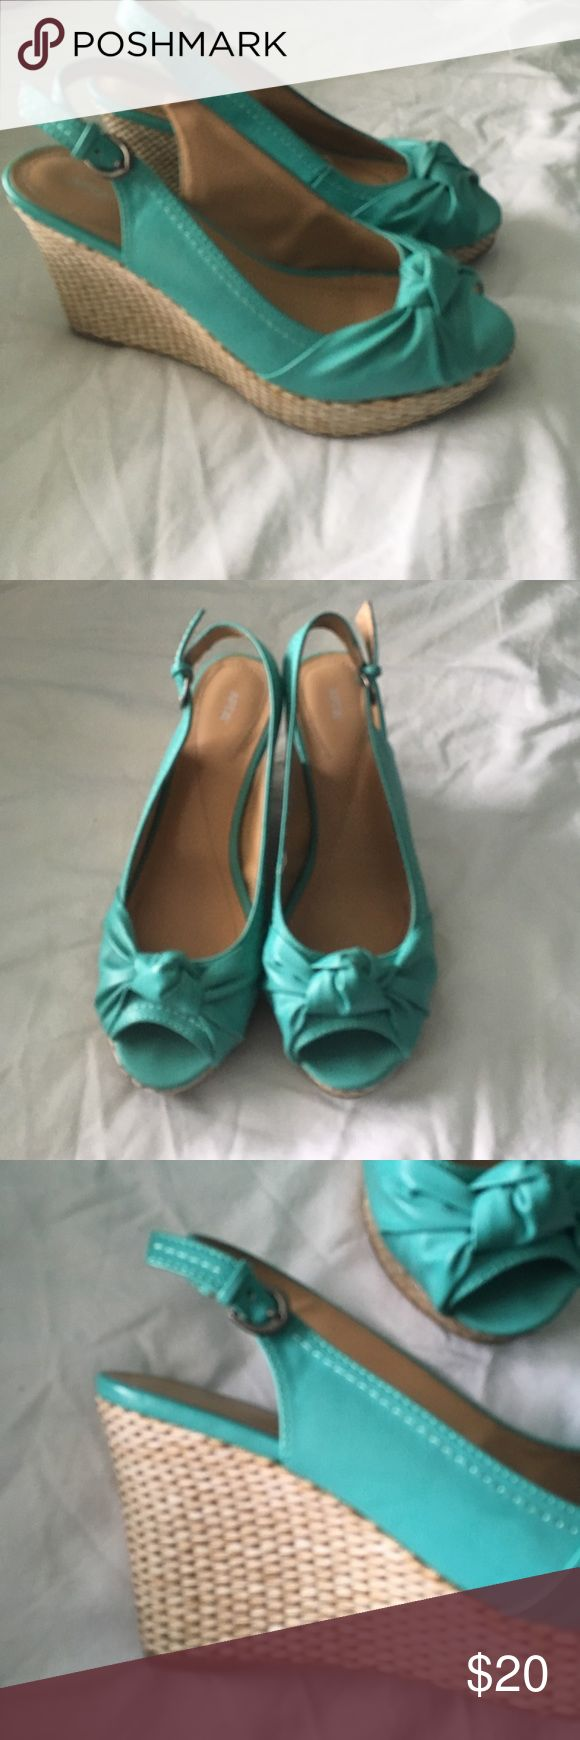 Turquoise wedges Turquoise wedges with cute design on toes. Open heel and toe with adjustable strap around the heels. Only worn twice. Still in great condition! Shoes Wedges